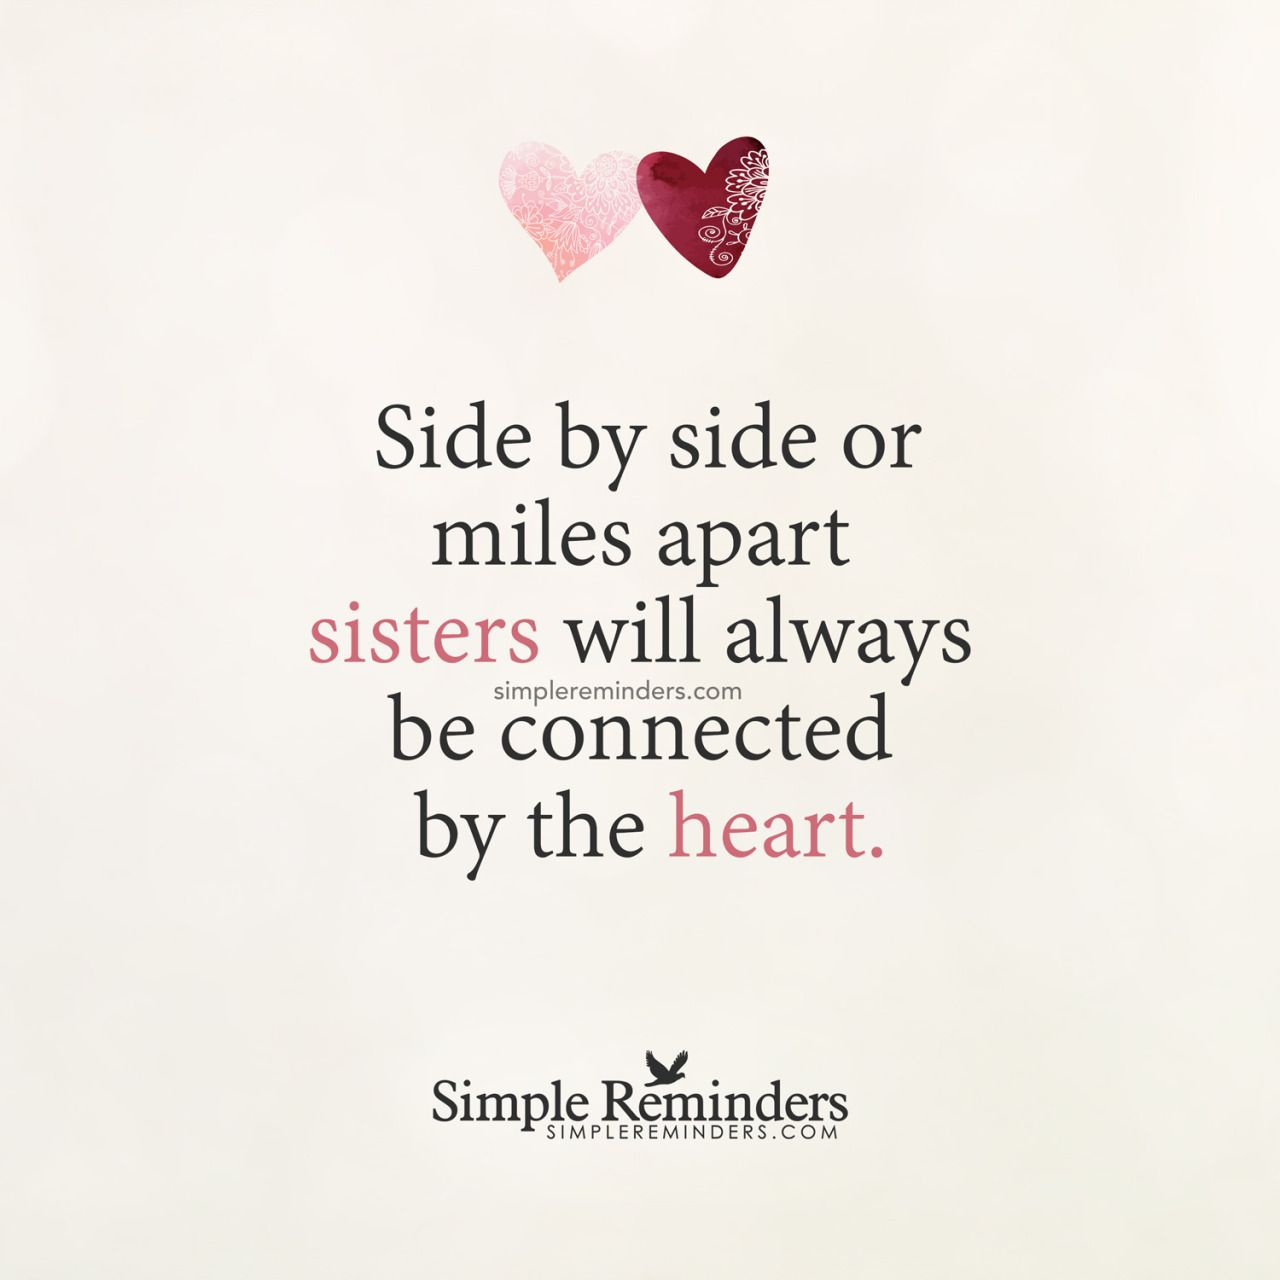 """Side by side or miles apart sisters will always be connected by the heart."" — Unknown Author"